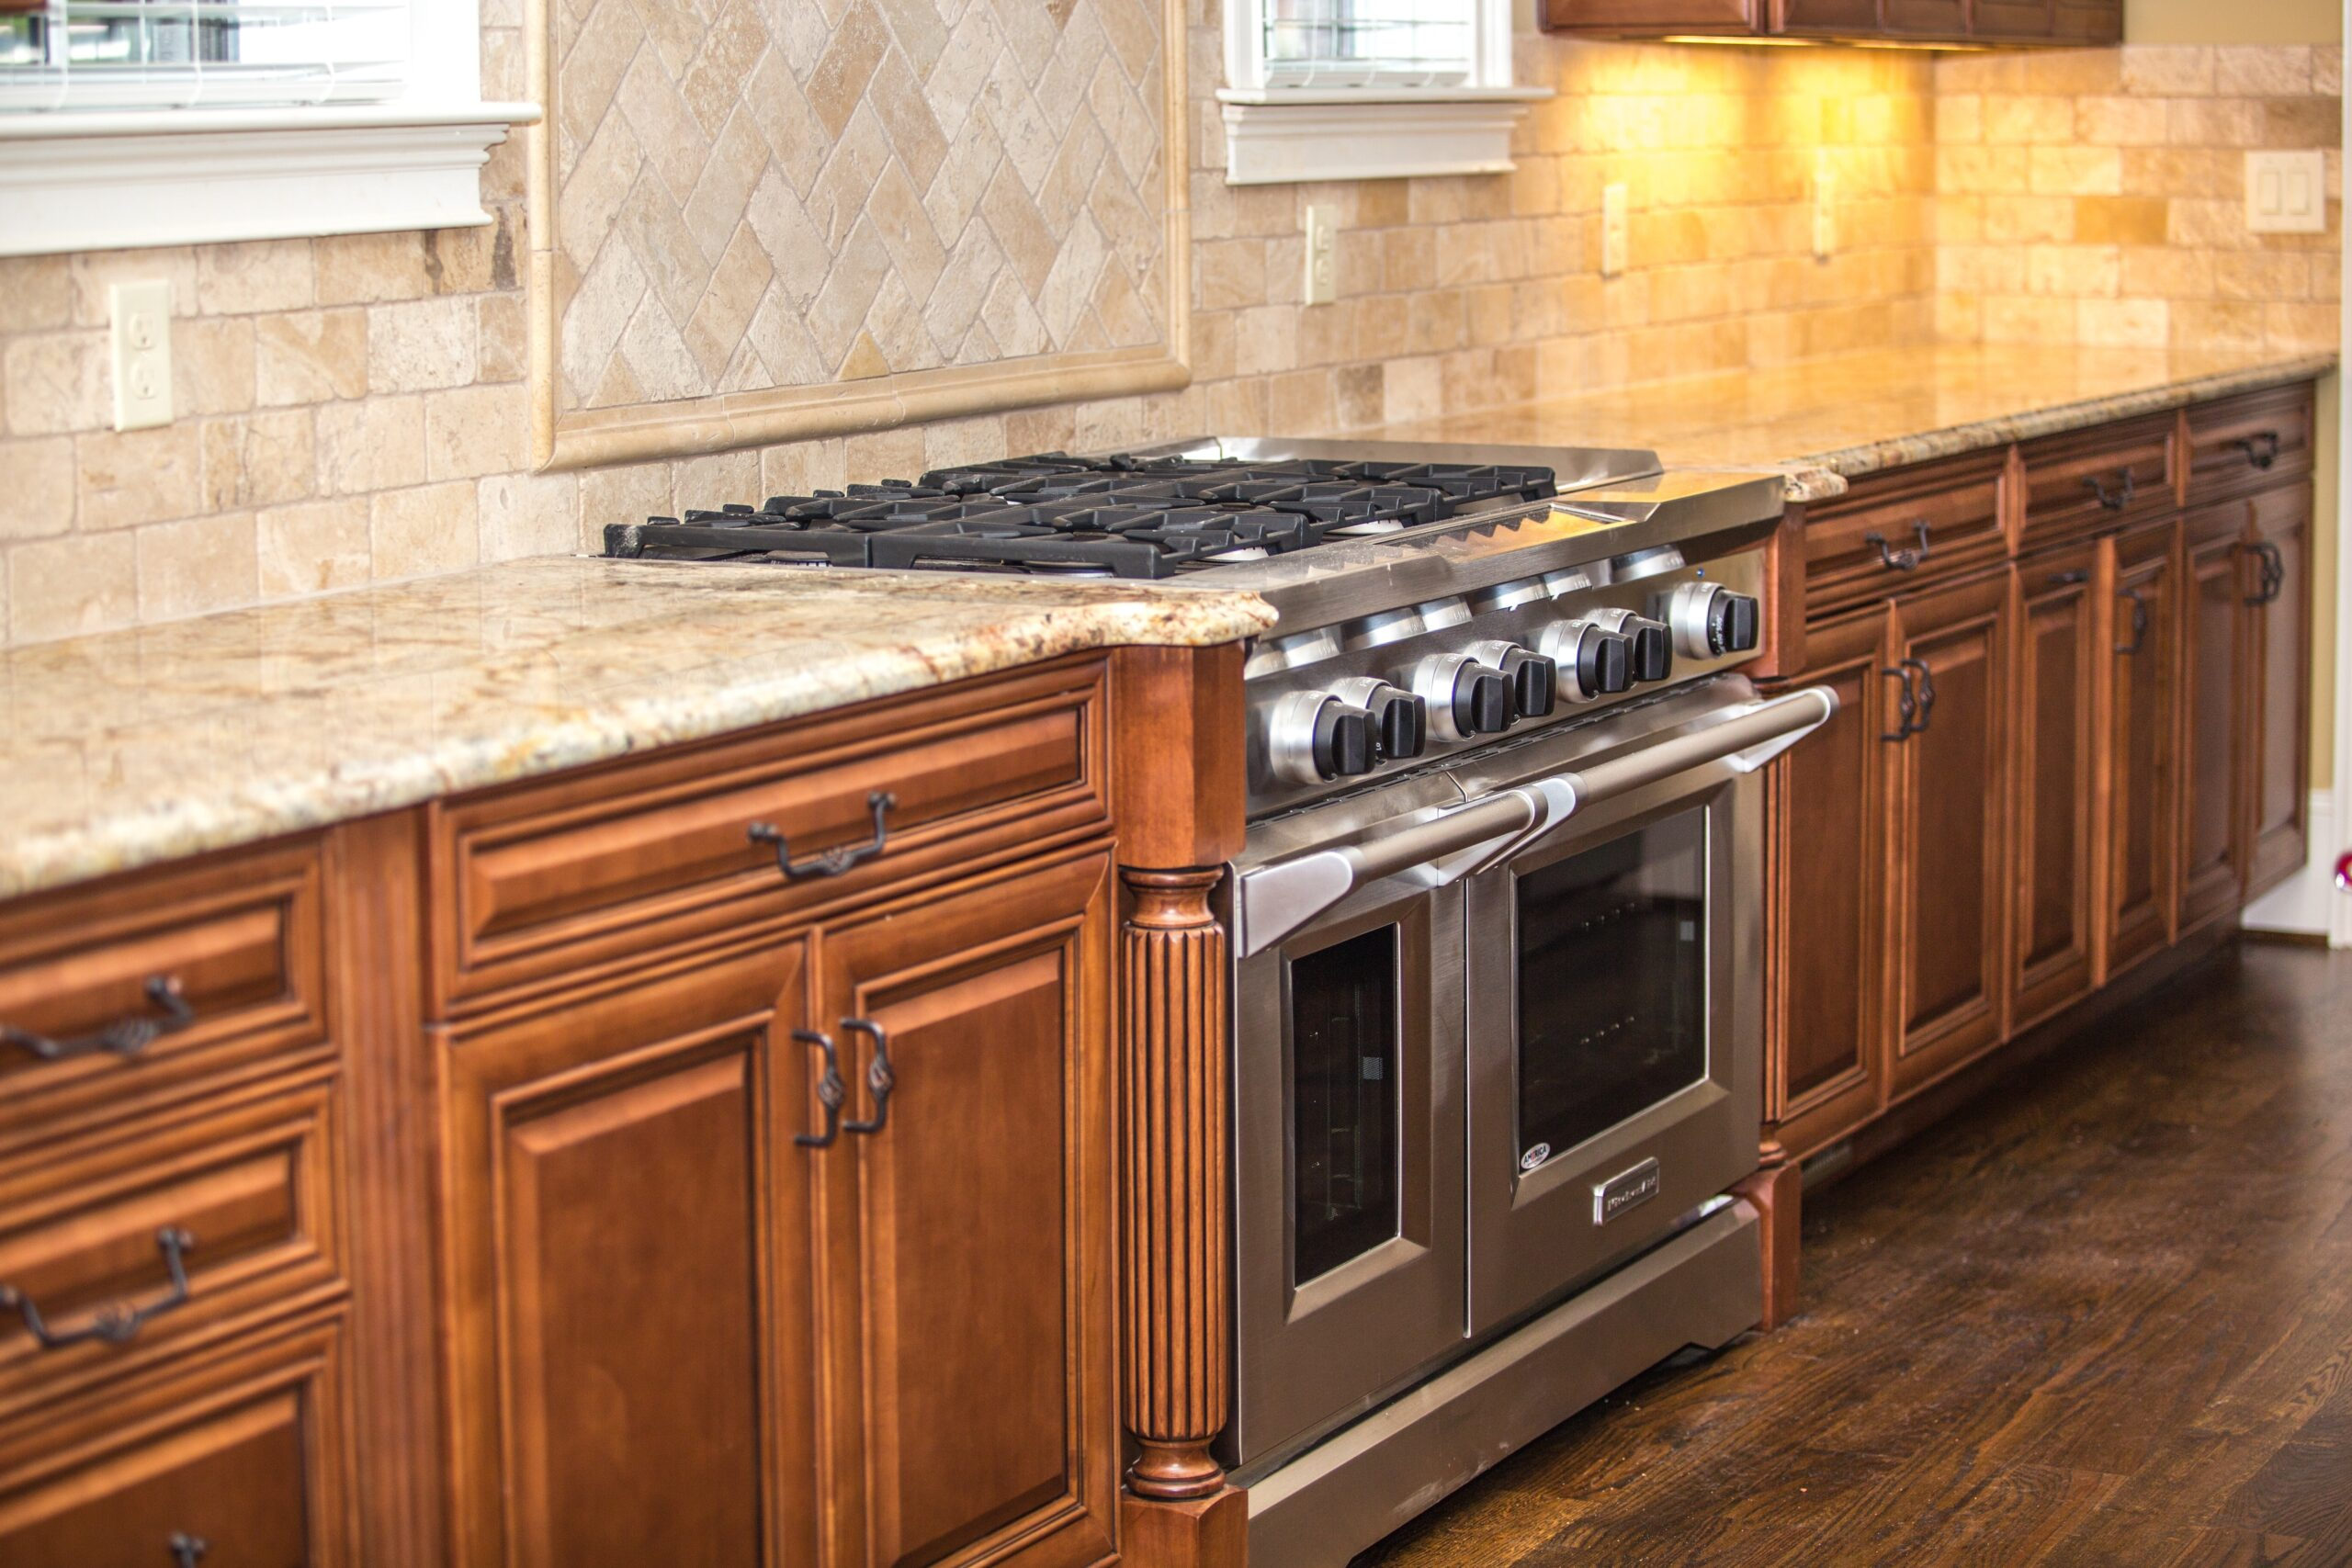 Oven Not Heating? 6 Possible Reasons Why